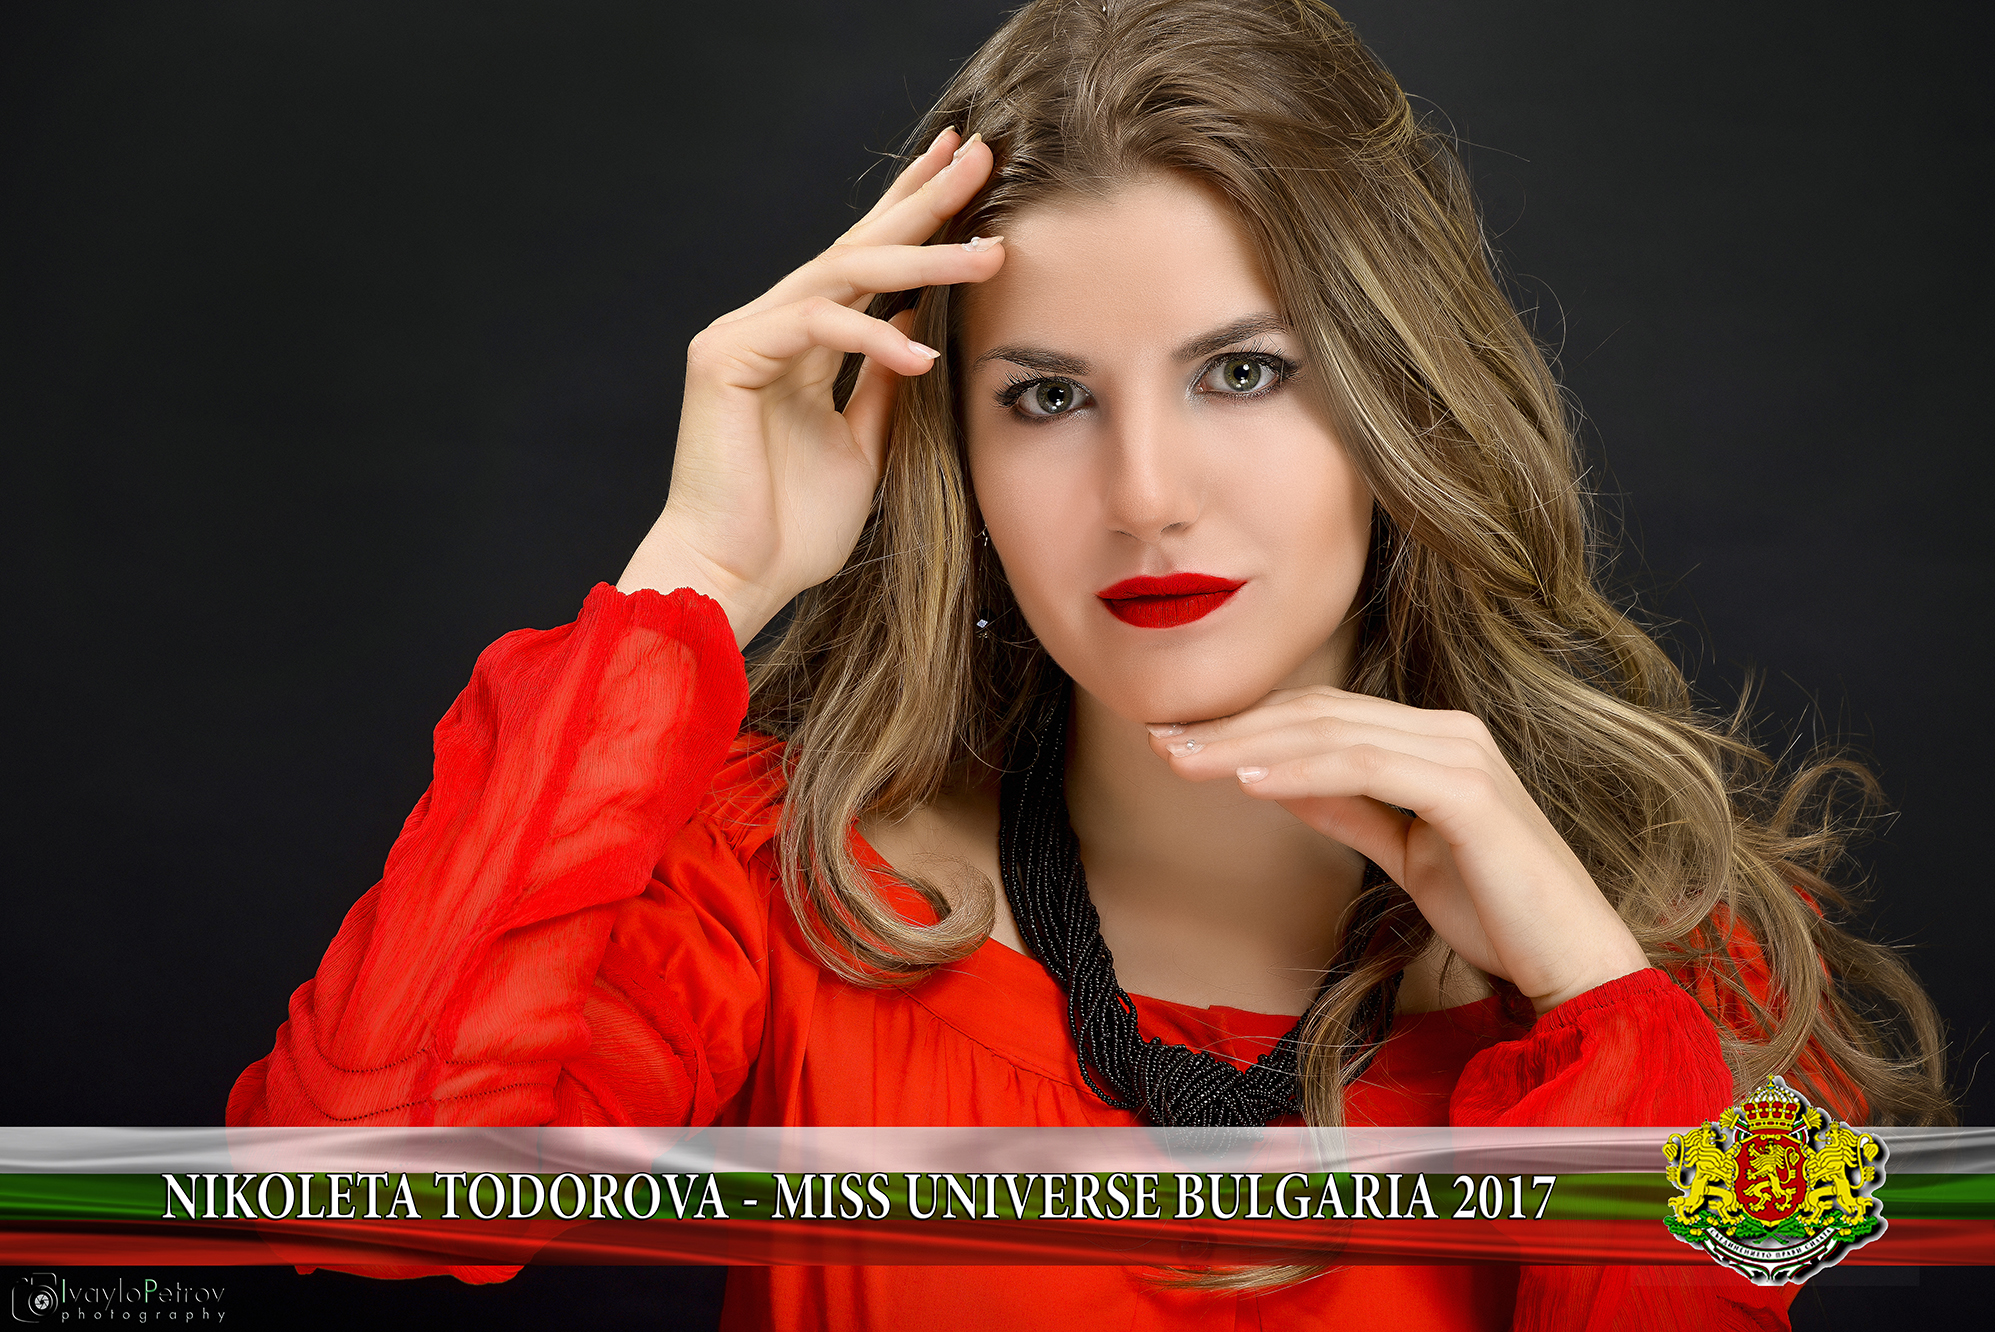 20161203_Photosession_Nikoleta01899_2Promo